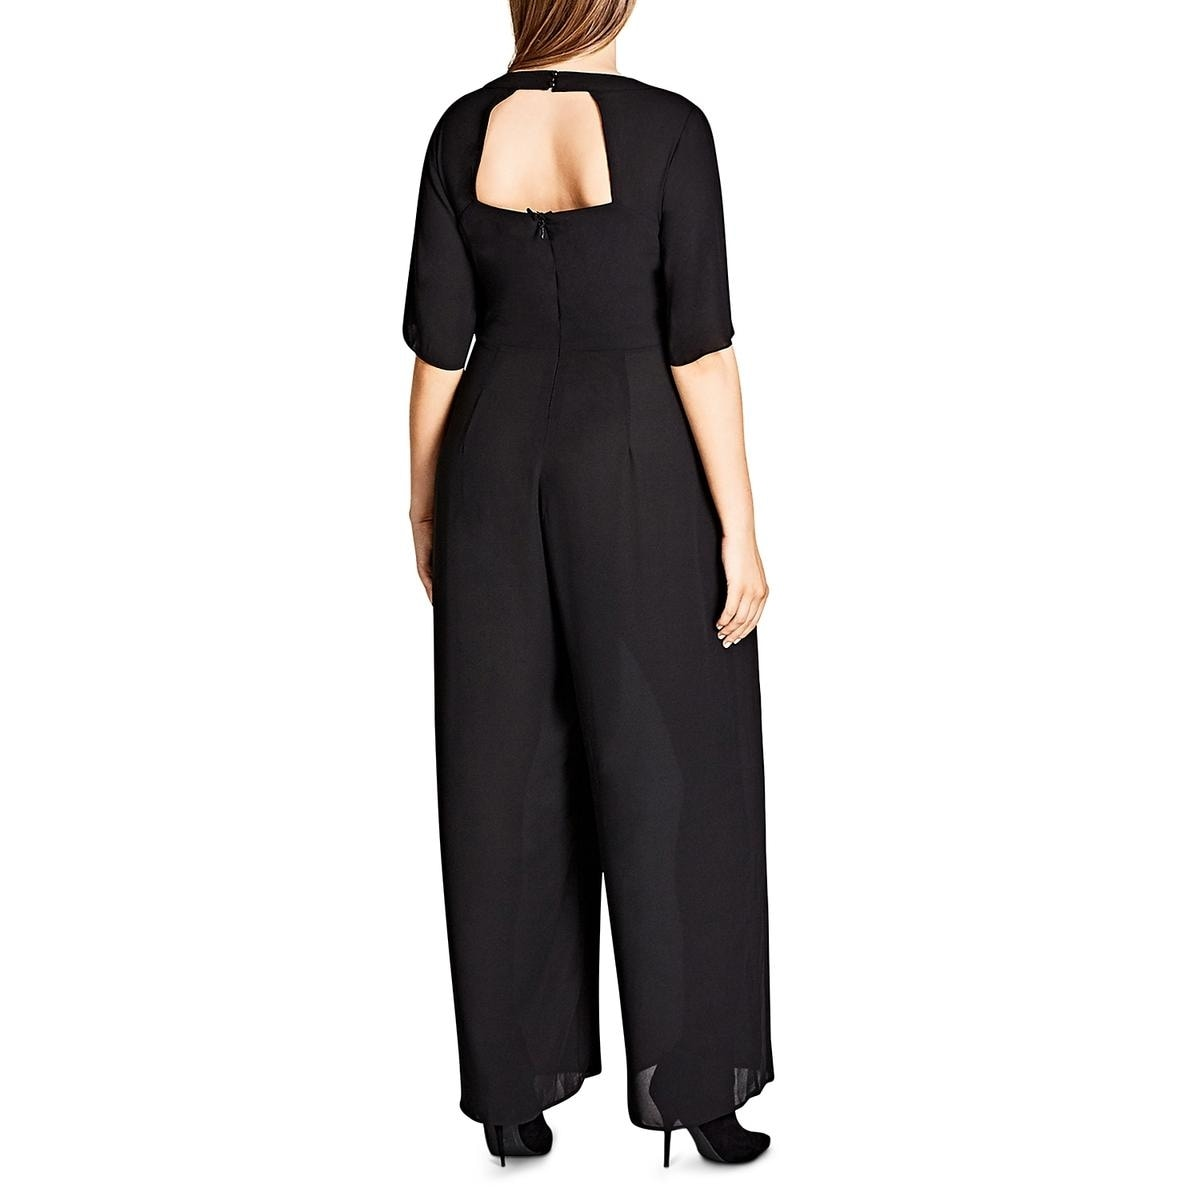 b9cc5c69f7e04 Shop City Chic Womens Plus Jumpsuit Wide Leg Cut-Out Back - Free Shipping  Today - Overstock - 24312828